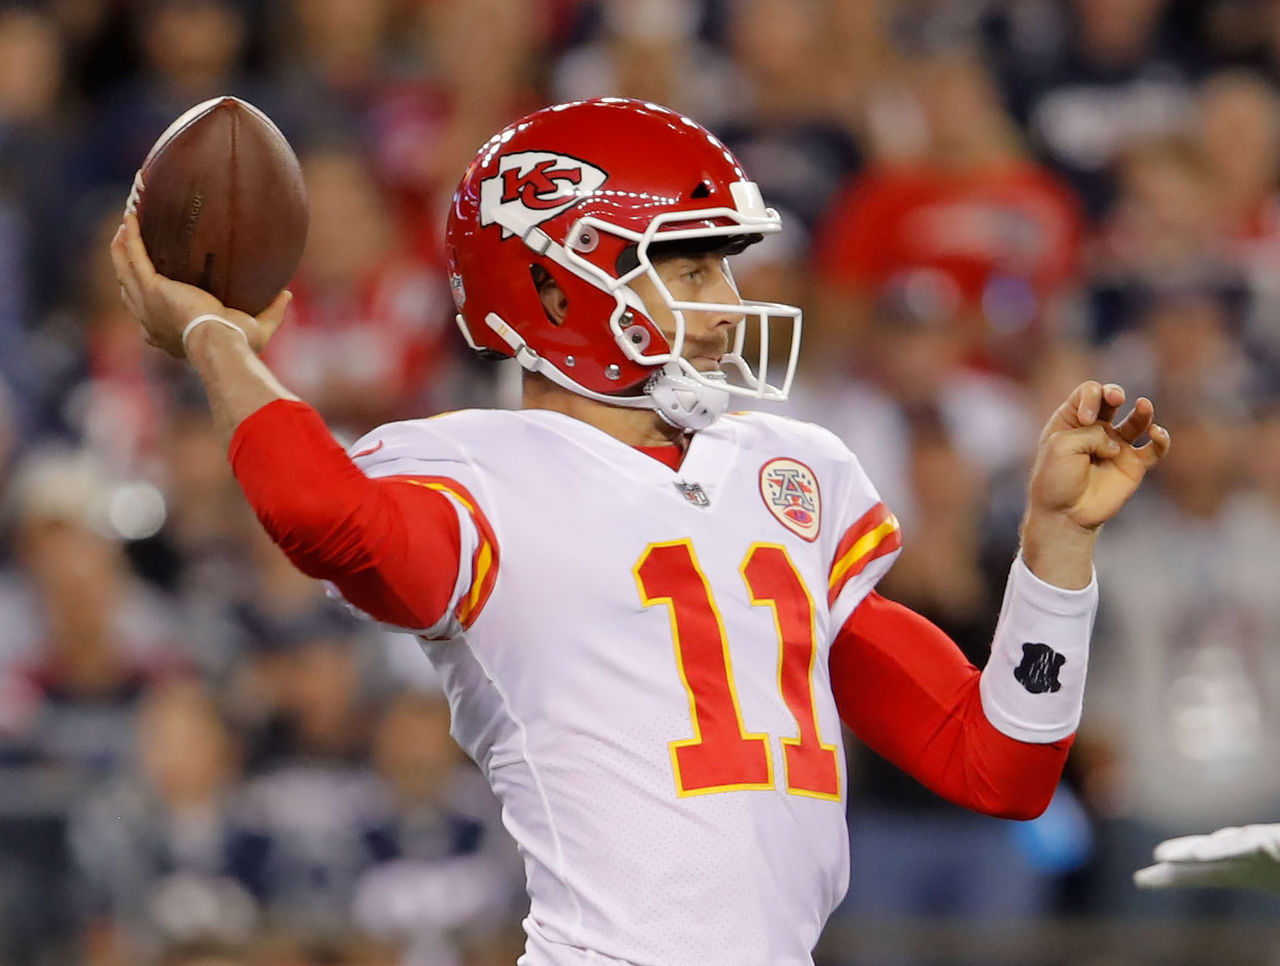 Cropped 2017 09 08t014321z 1052510100 nocid rtrmadp 3 nfl kansas city chiefs at new england patriots